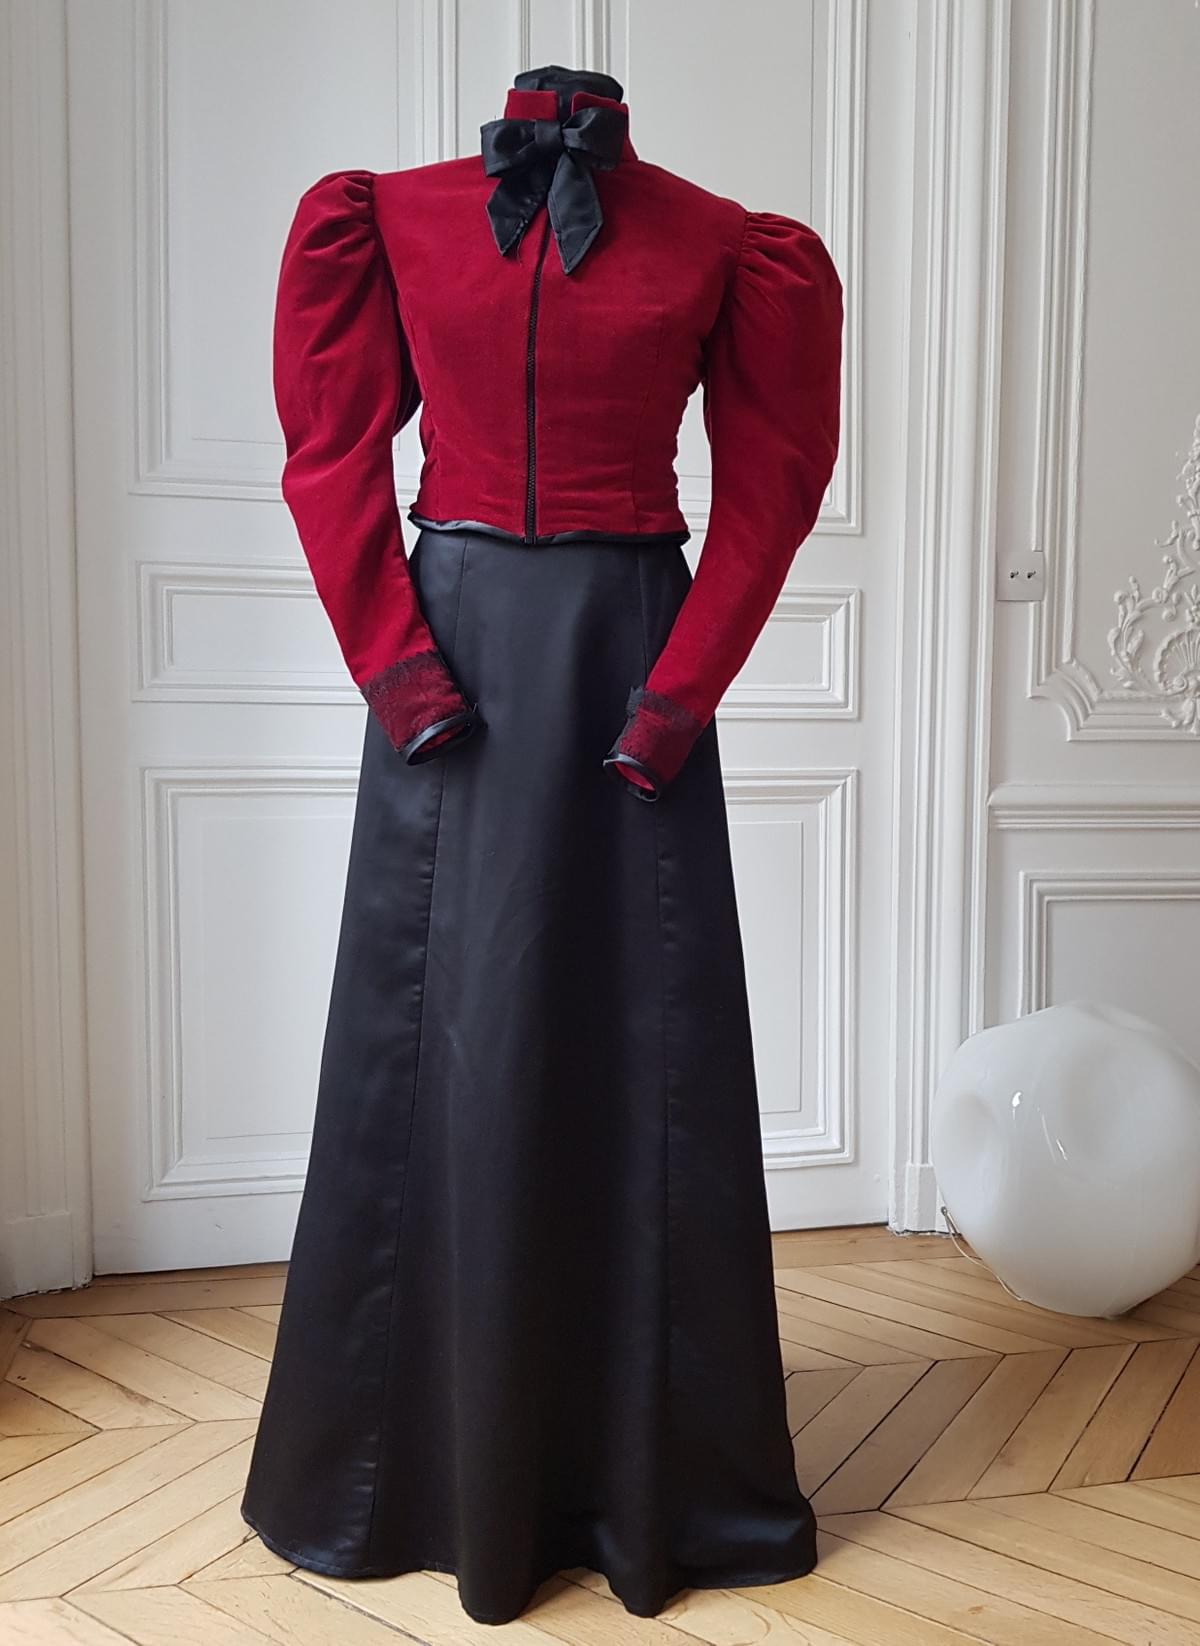 Boname-Paris-Ensemble-Cléo-Veste-velours-et-jupe-satin